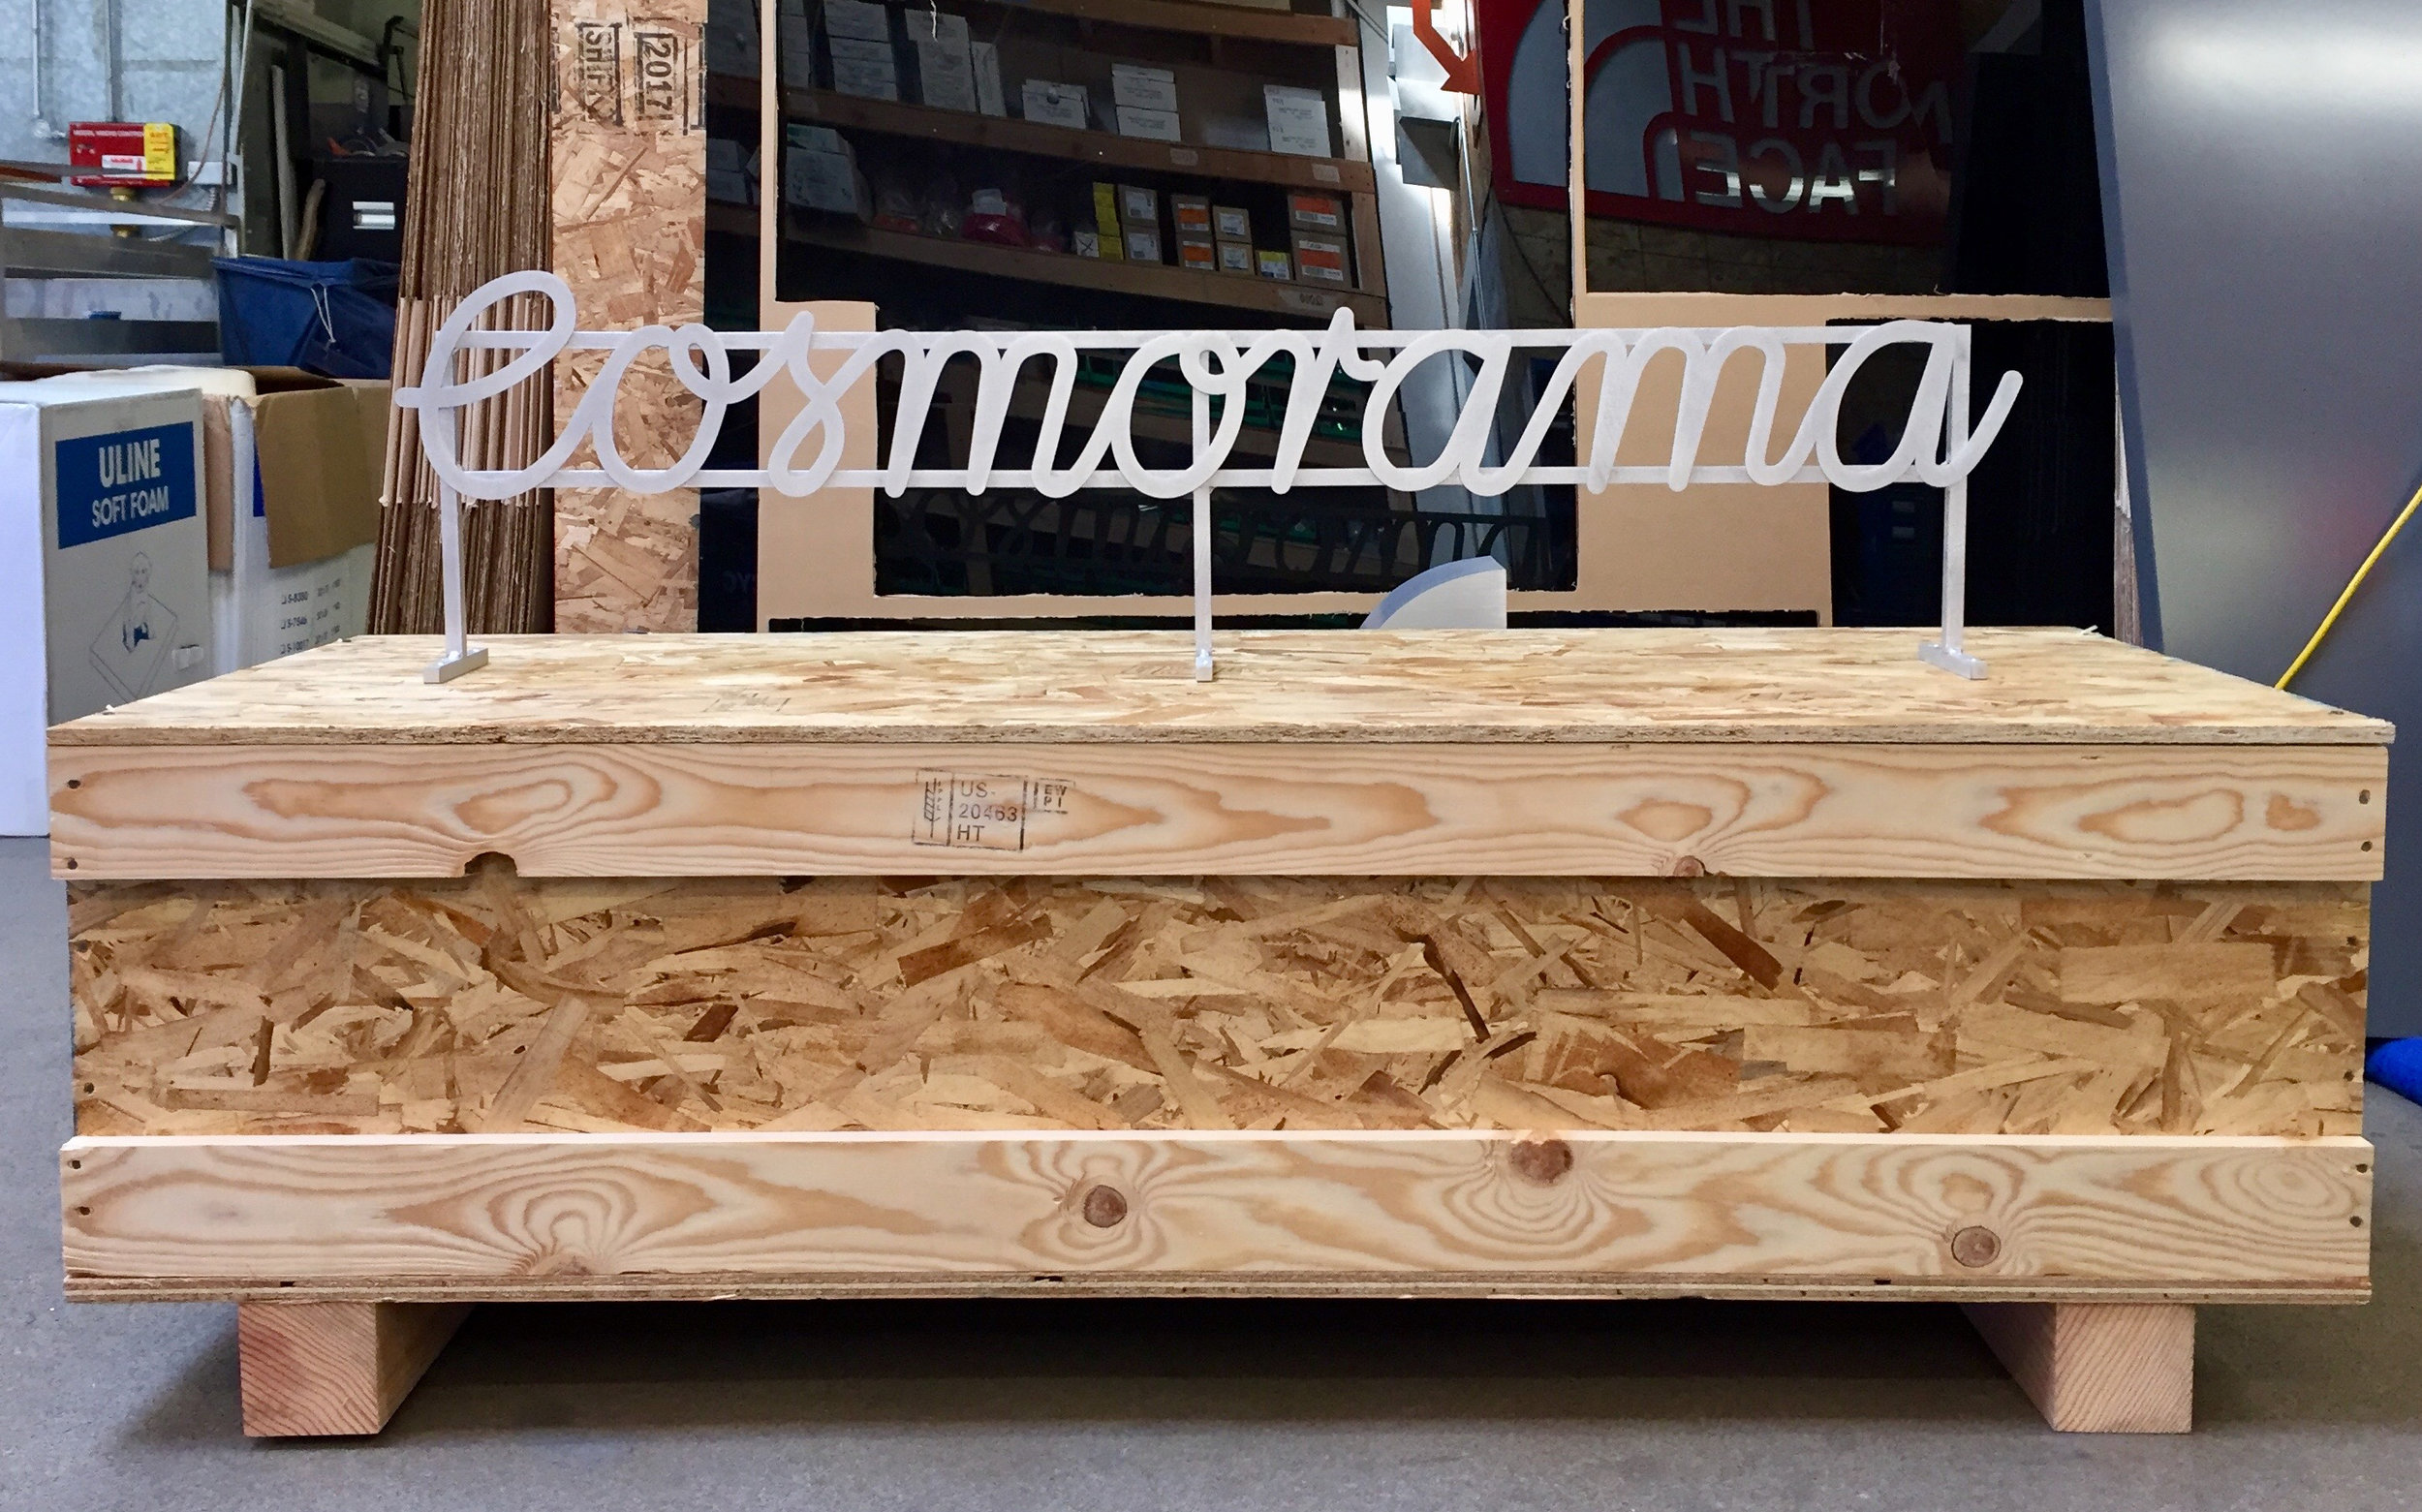 In-process Cosmorama sign. Image © Western Neon 2018